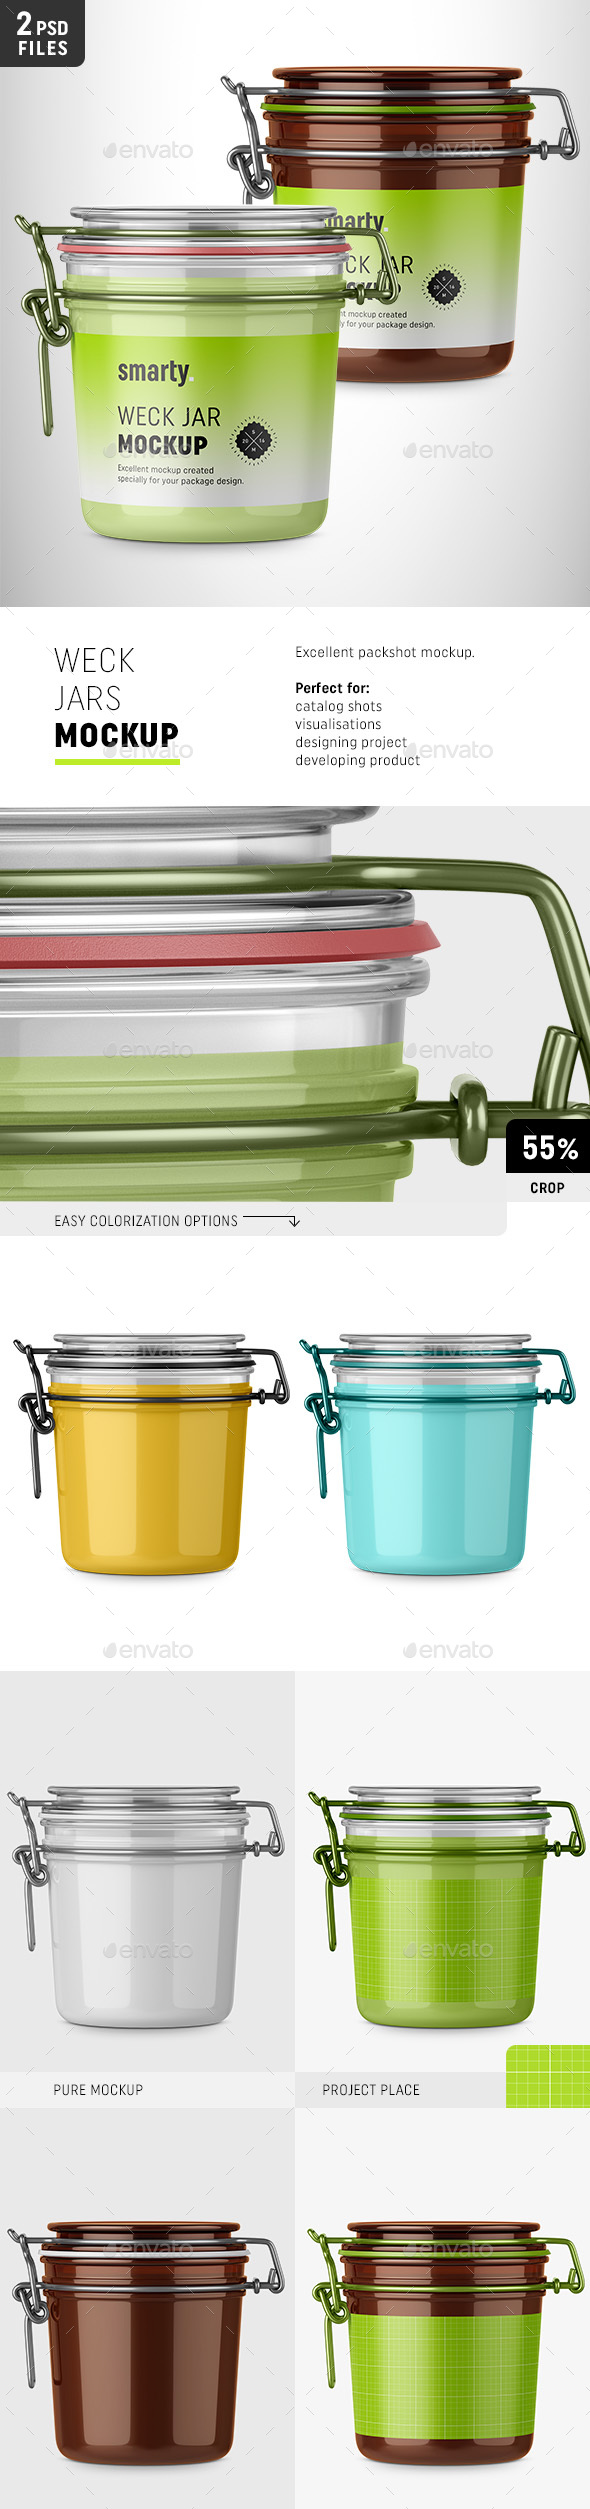 Weck Jars Mockup - Miscellaneous Packaging